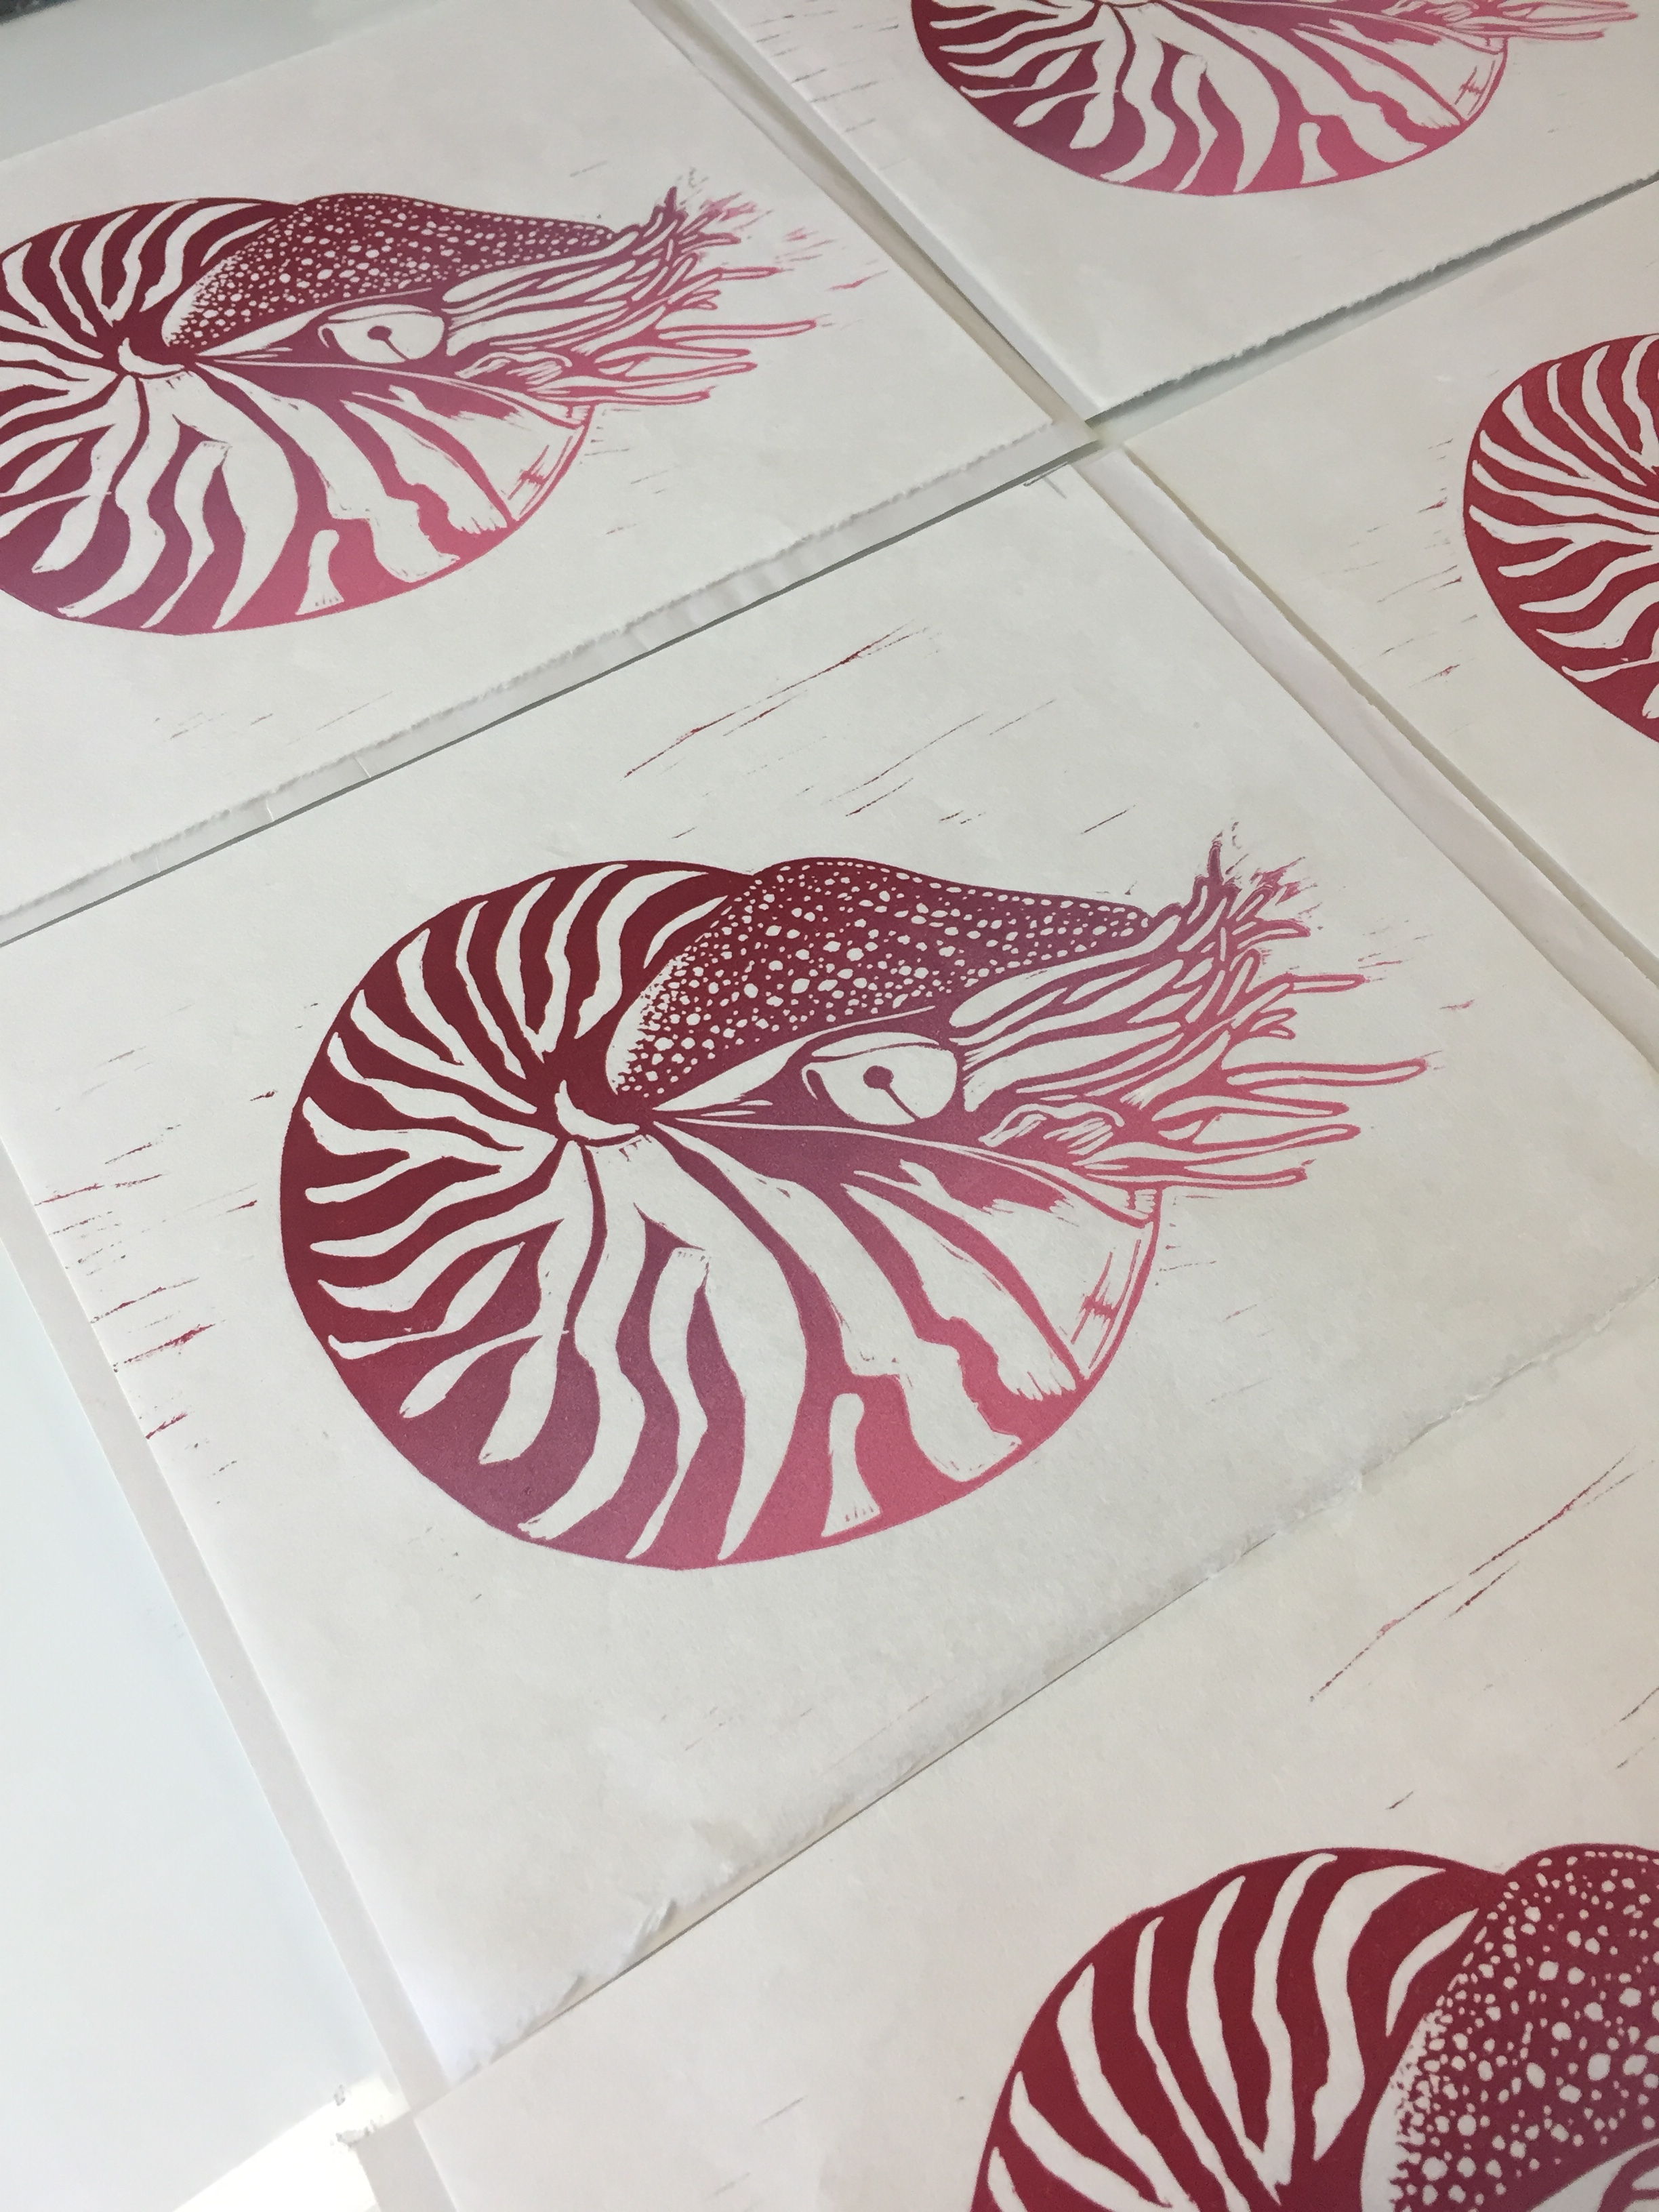 NAUTILUS. An impomptu studio session produces a new edition of handmade prints.